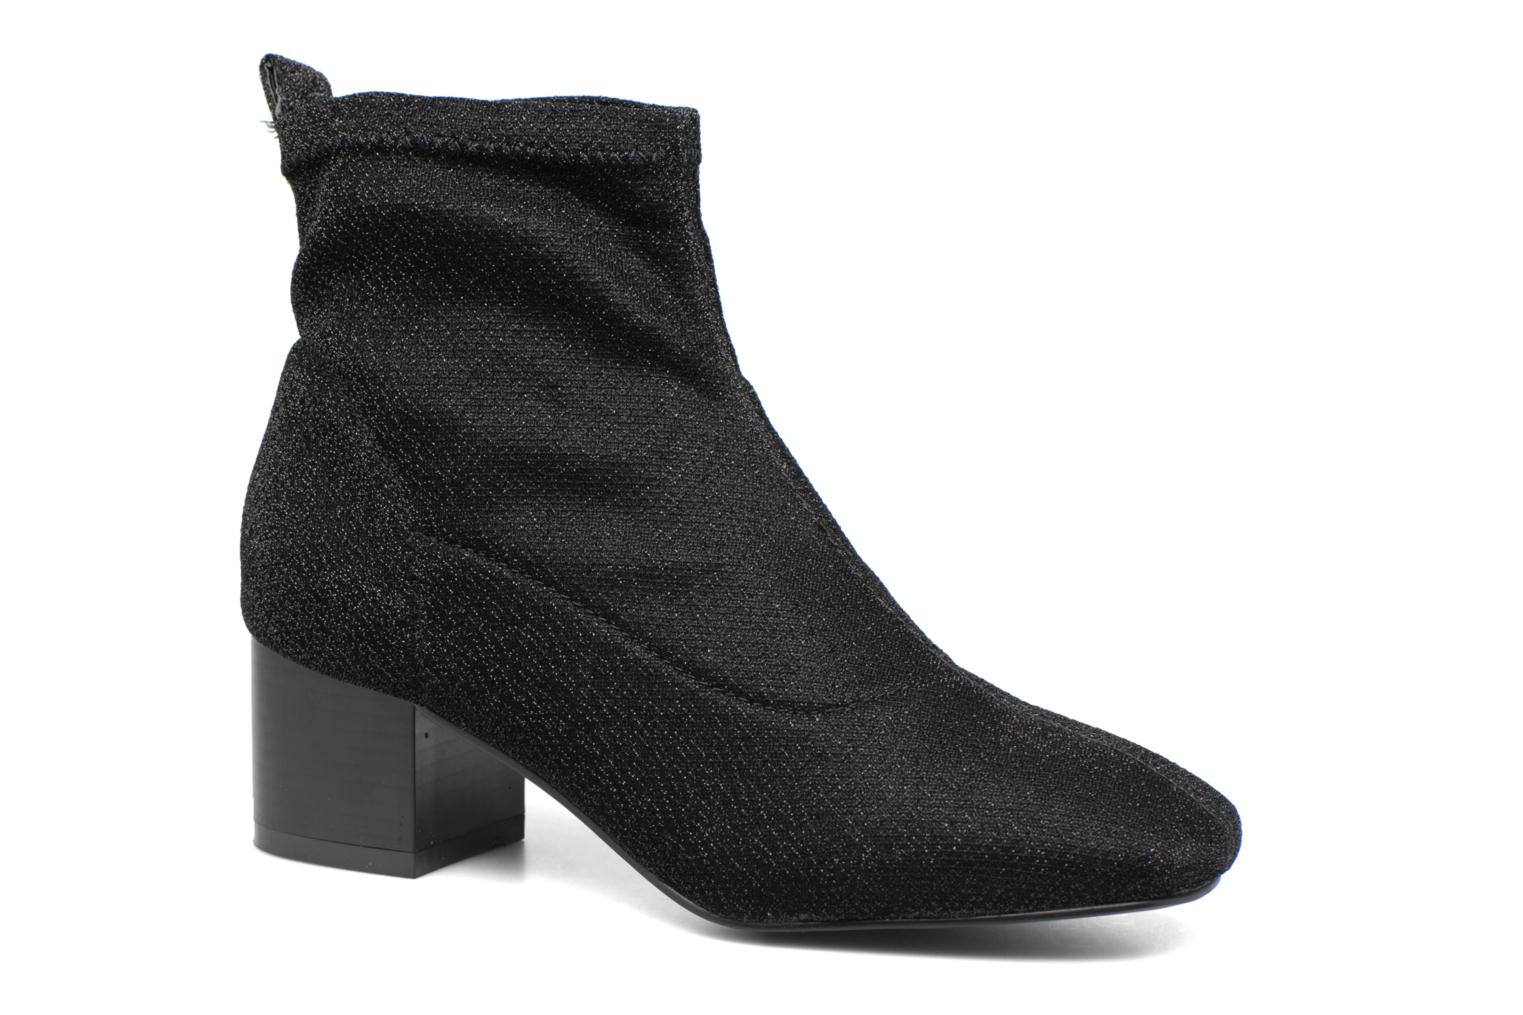 I Love Shoes - Damen - THIMO - Stiefeletten & Boots - schwarz hl2oR2aSsW